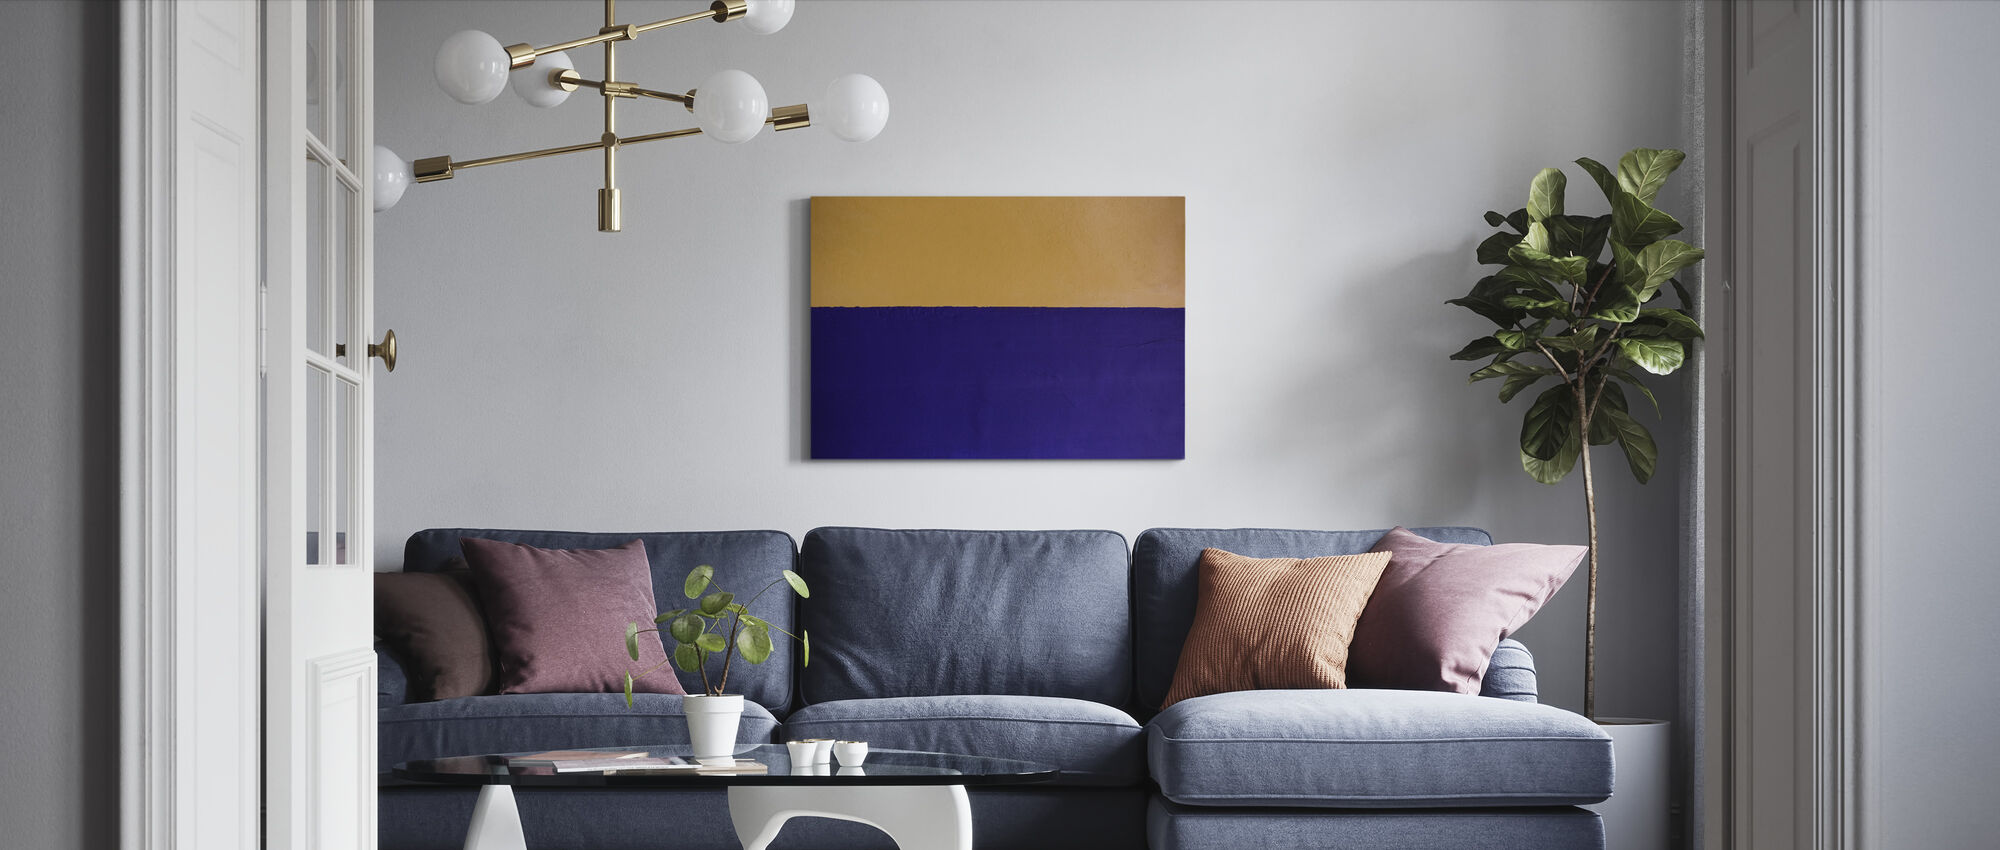 Yellow and Blue Wall - Canvas print - Living Room